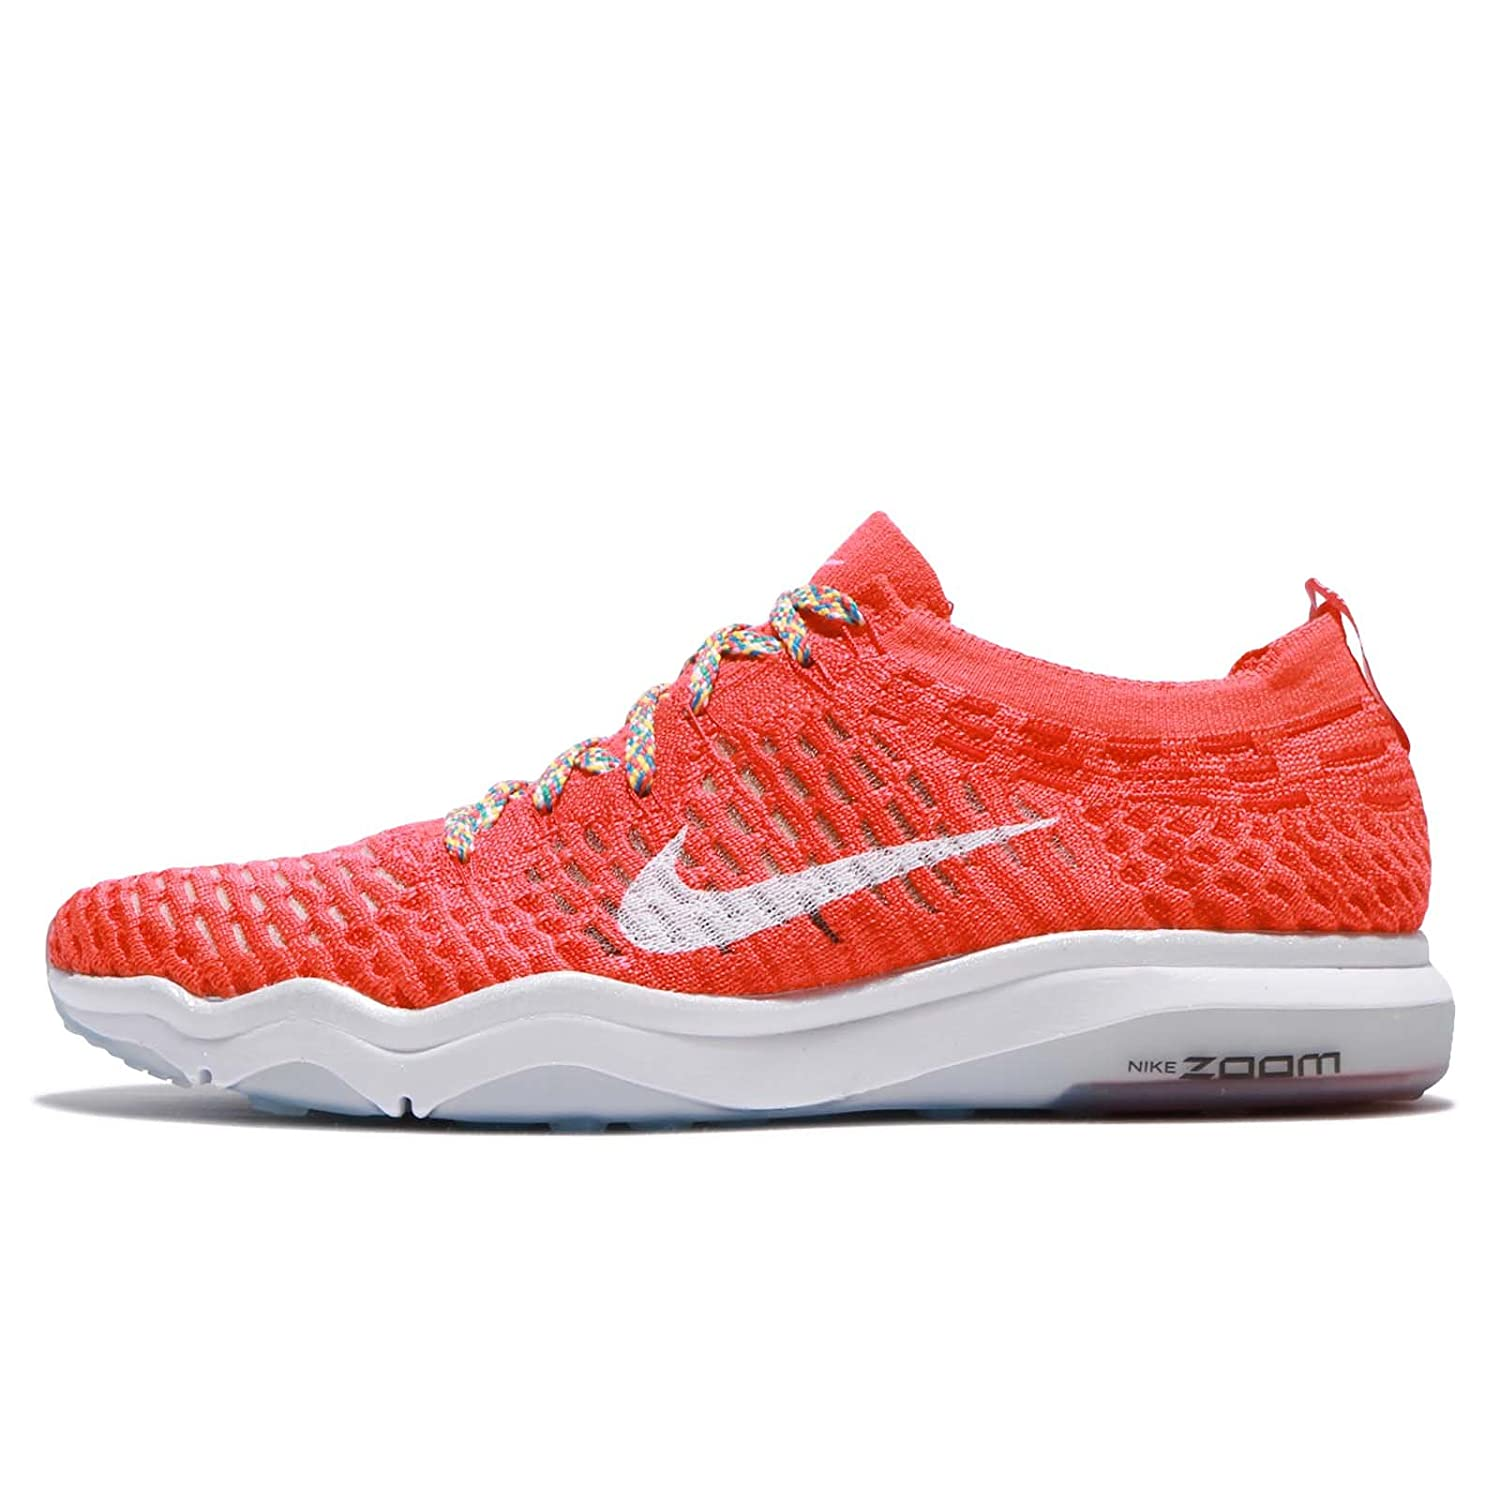 NIKE Women's Air Zoom Fearless Flyknit Running Shoes Crimson/White B072QCPJL2 6 B(M) US|Bright Crimson/White Shoes 5abf88